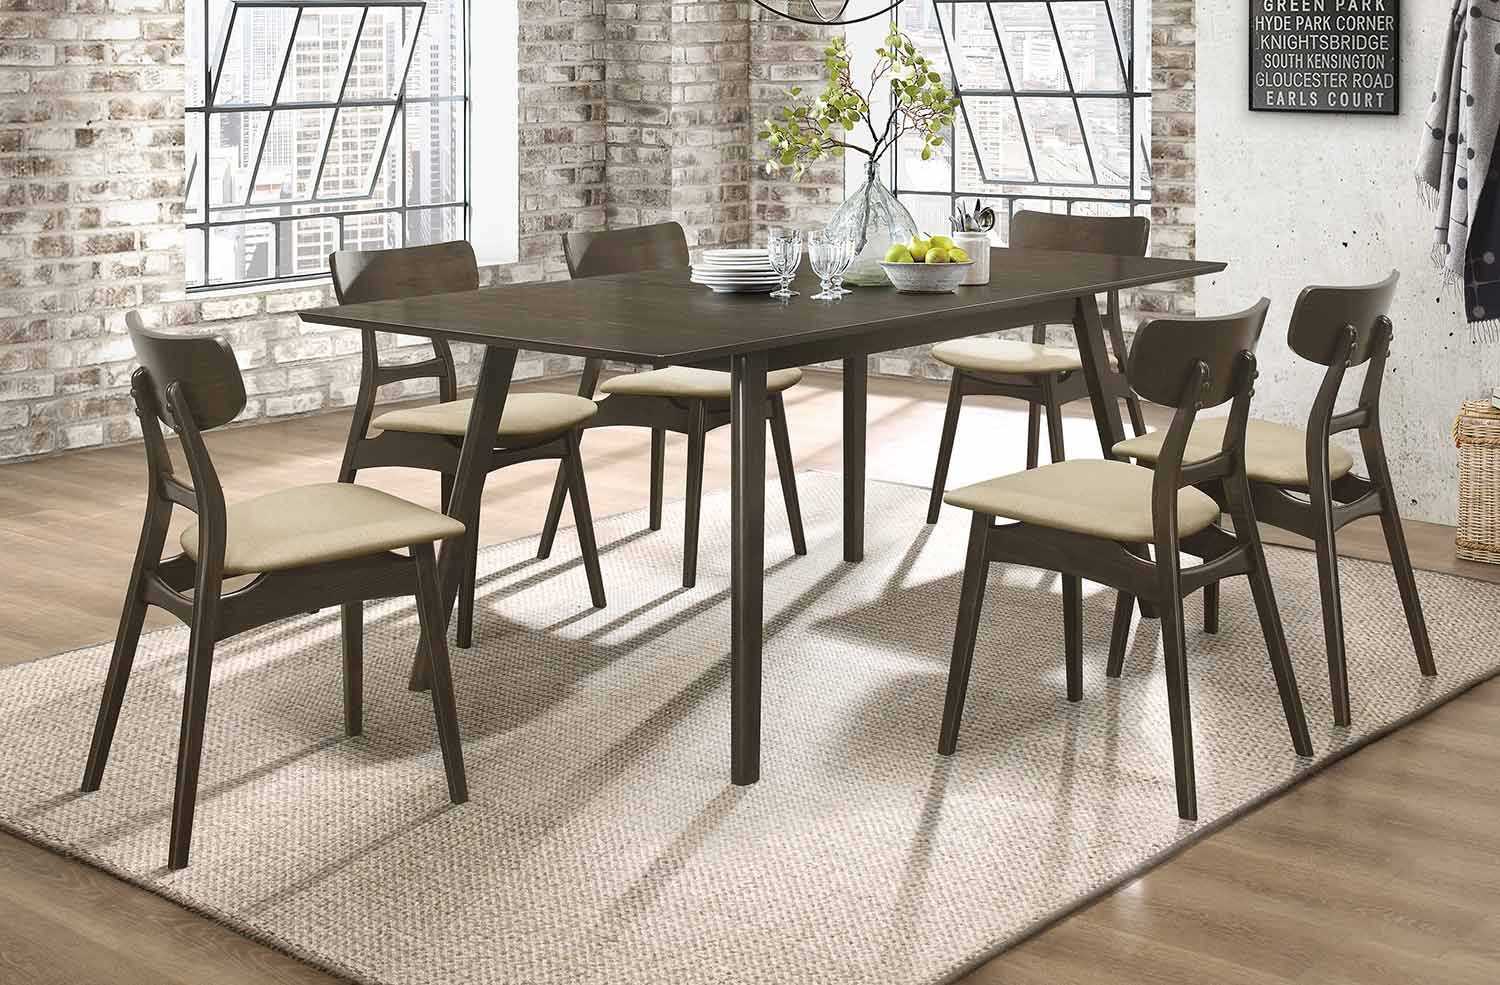 Homelegance Tannar Dining Set - Brown